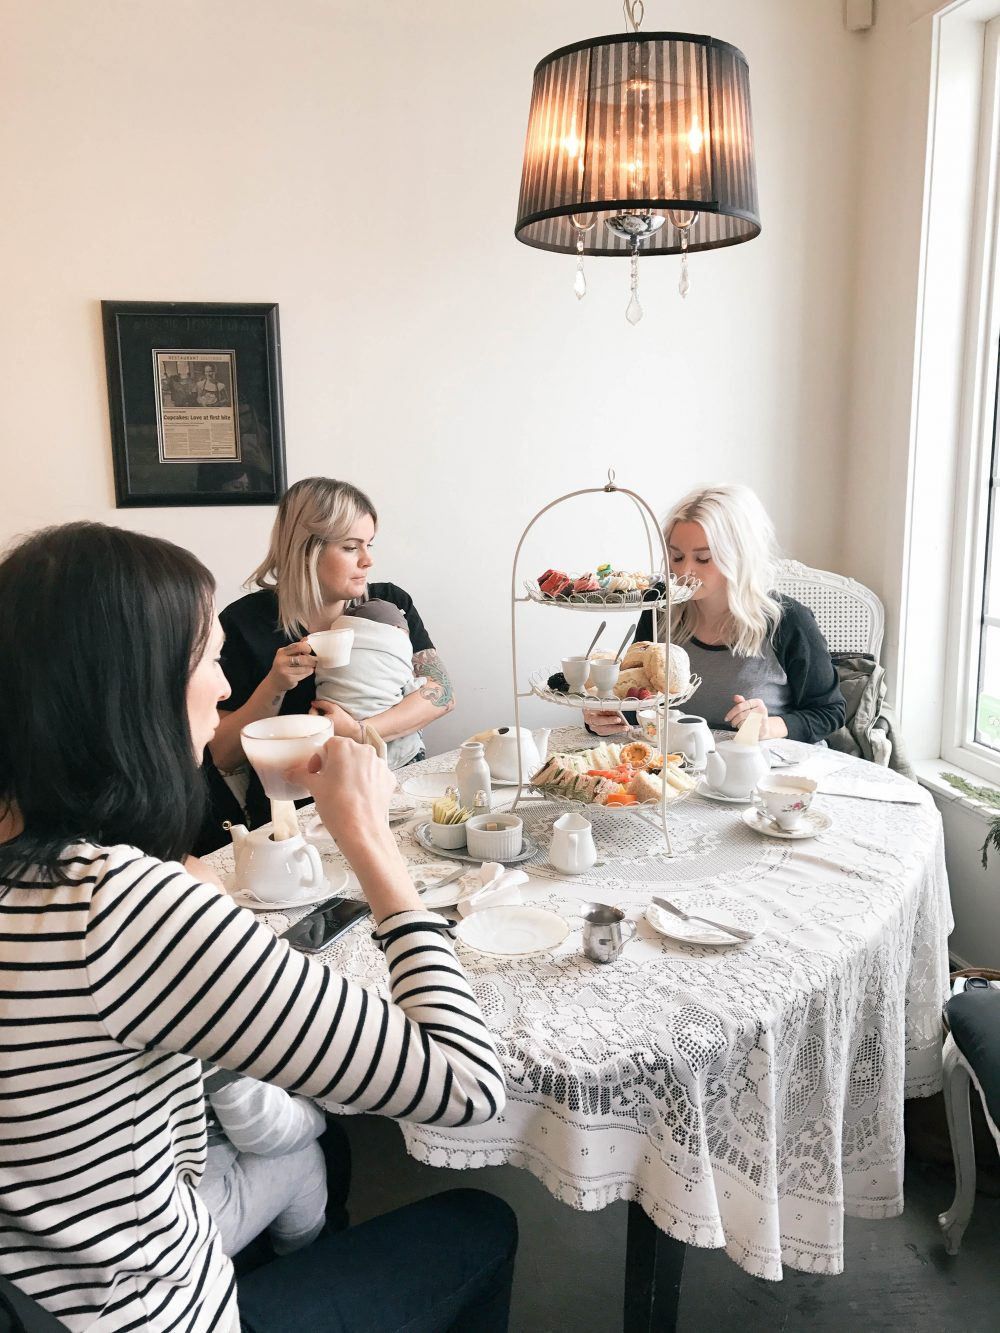 High Tea at Tracycakes Bakery Cafe | Fraser Valley